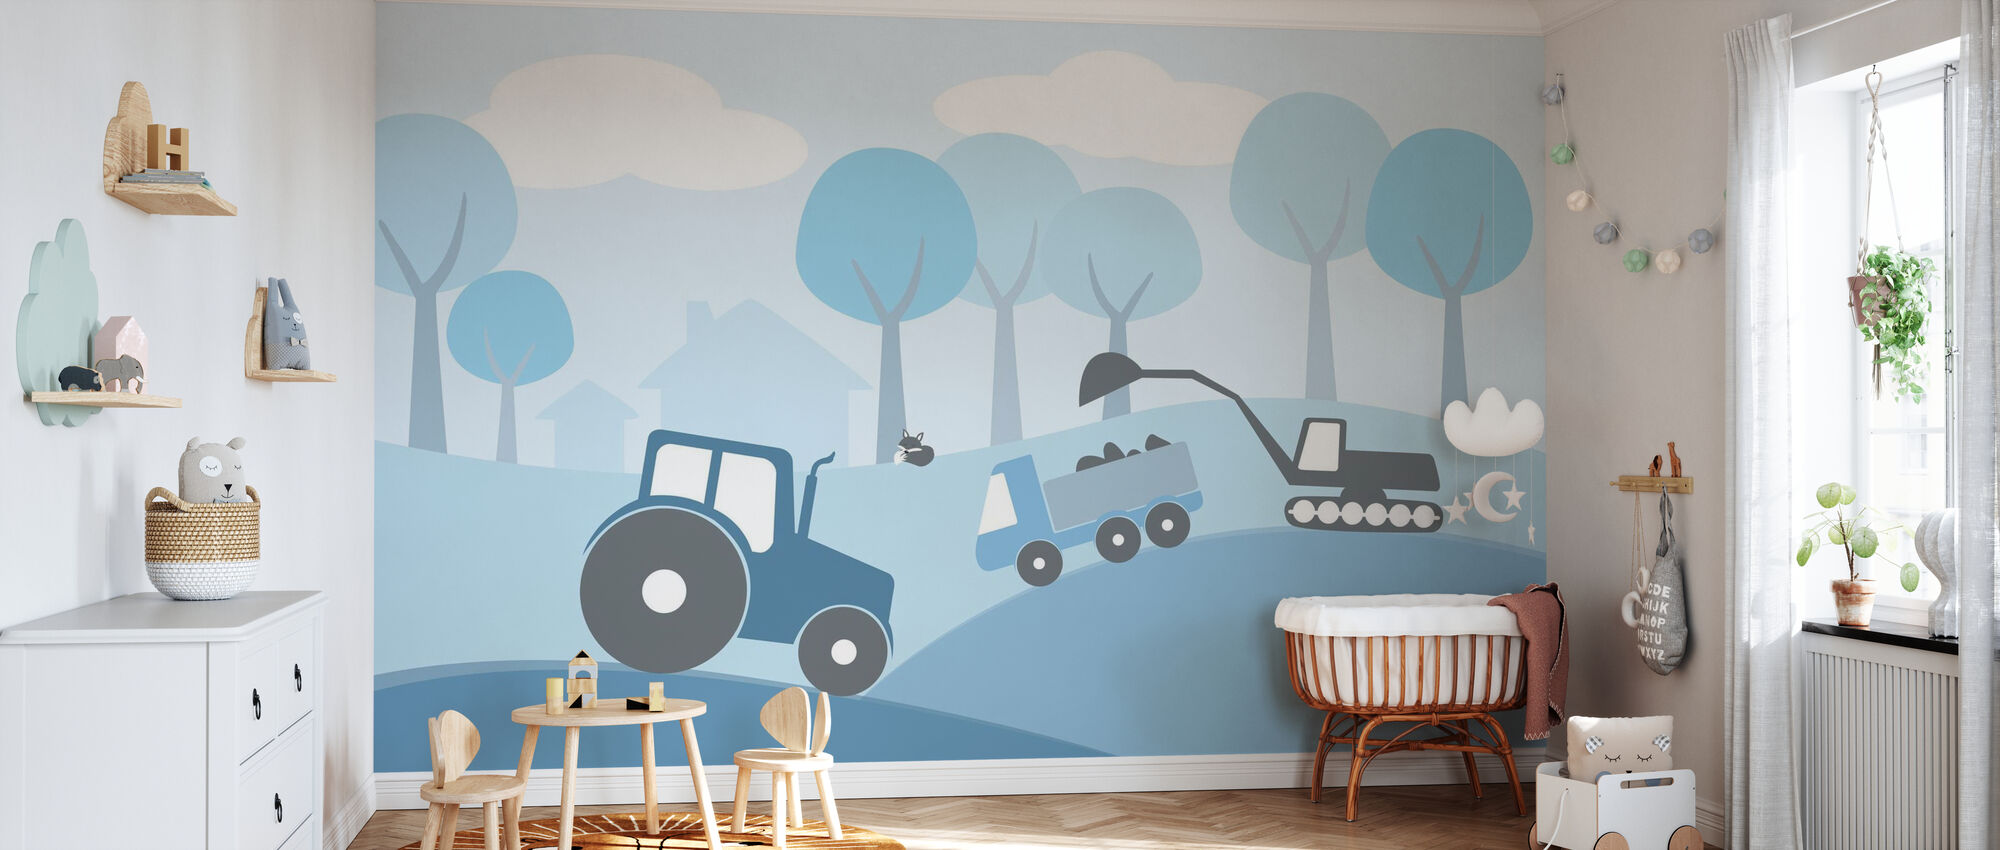 Countryside - Blue - Wallpaper - Nursery